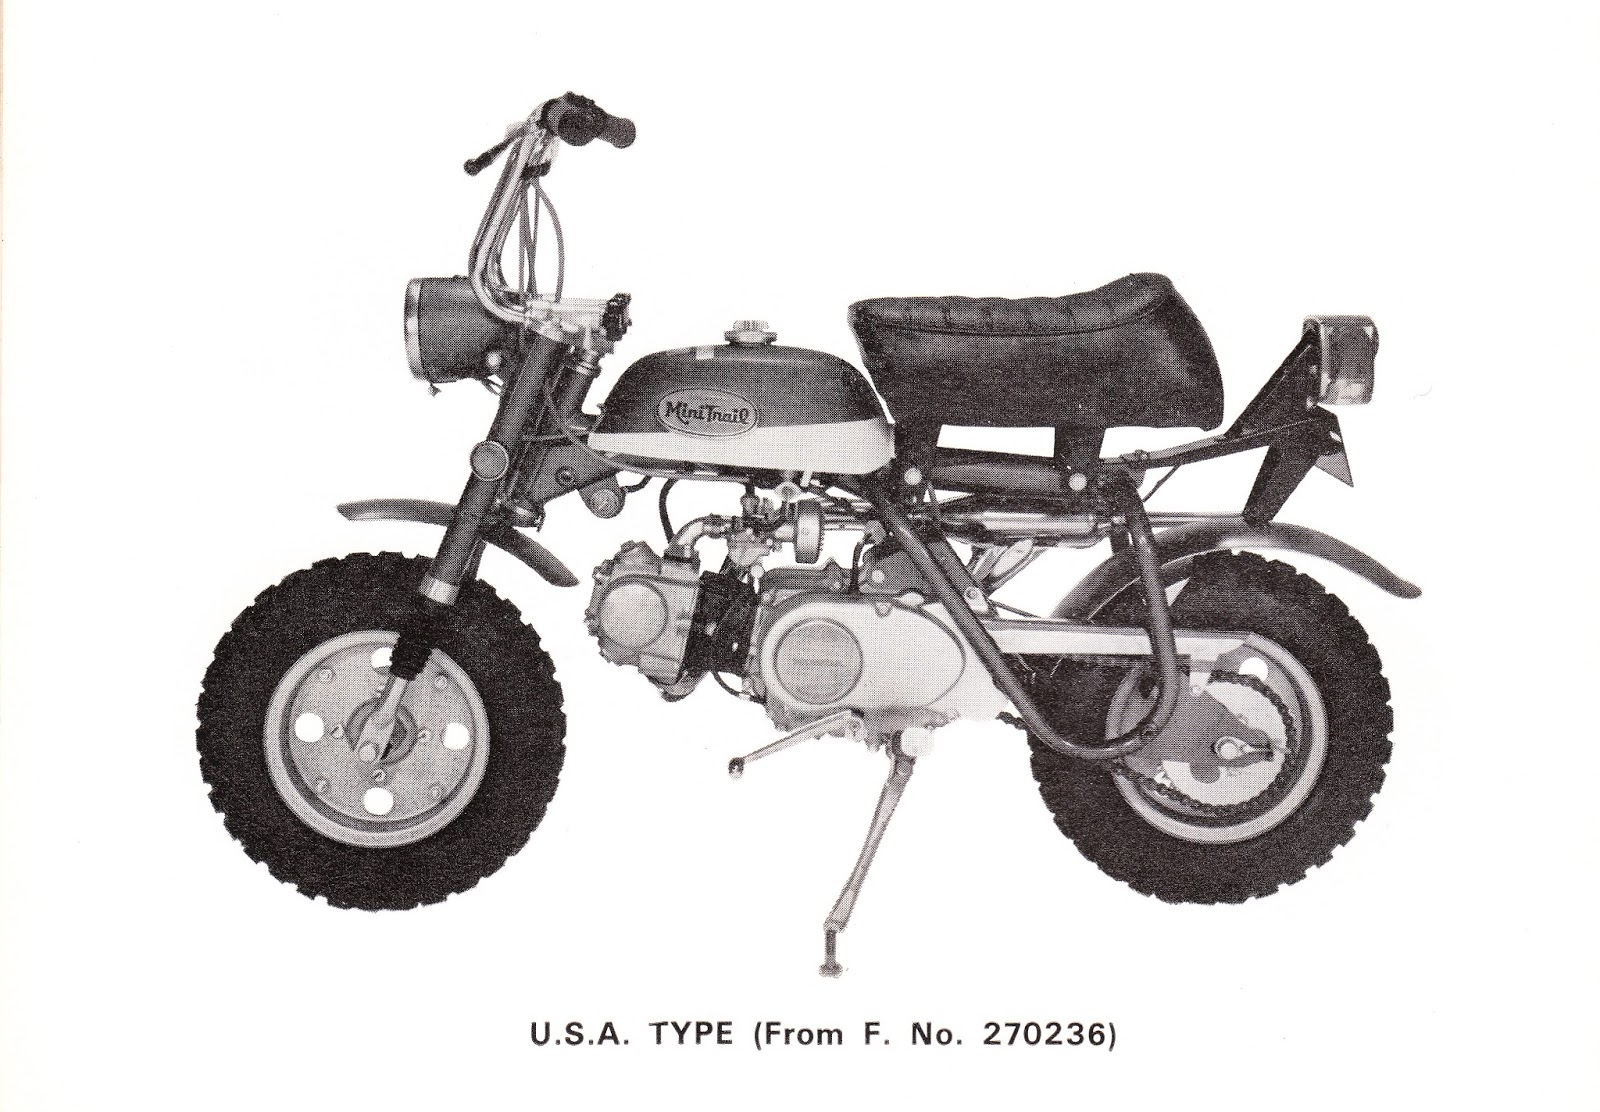 1970 Honda Trail 70 Parts 1969 Z50 Diagram Wiring Electricity Basics 101 A Mini Restoration Project Rh Z50a Blogspot Com Ct70